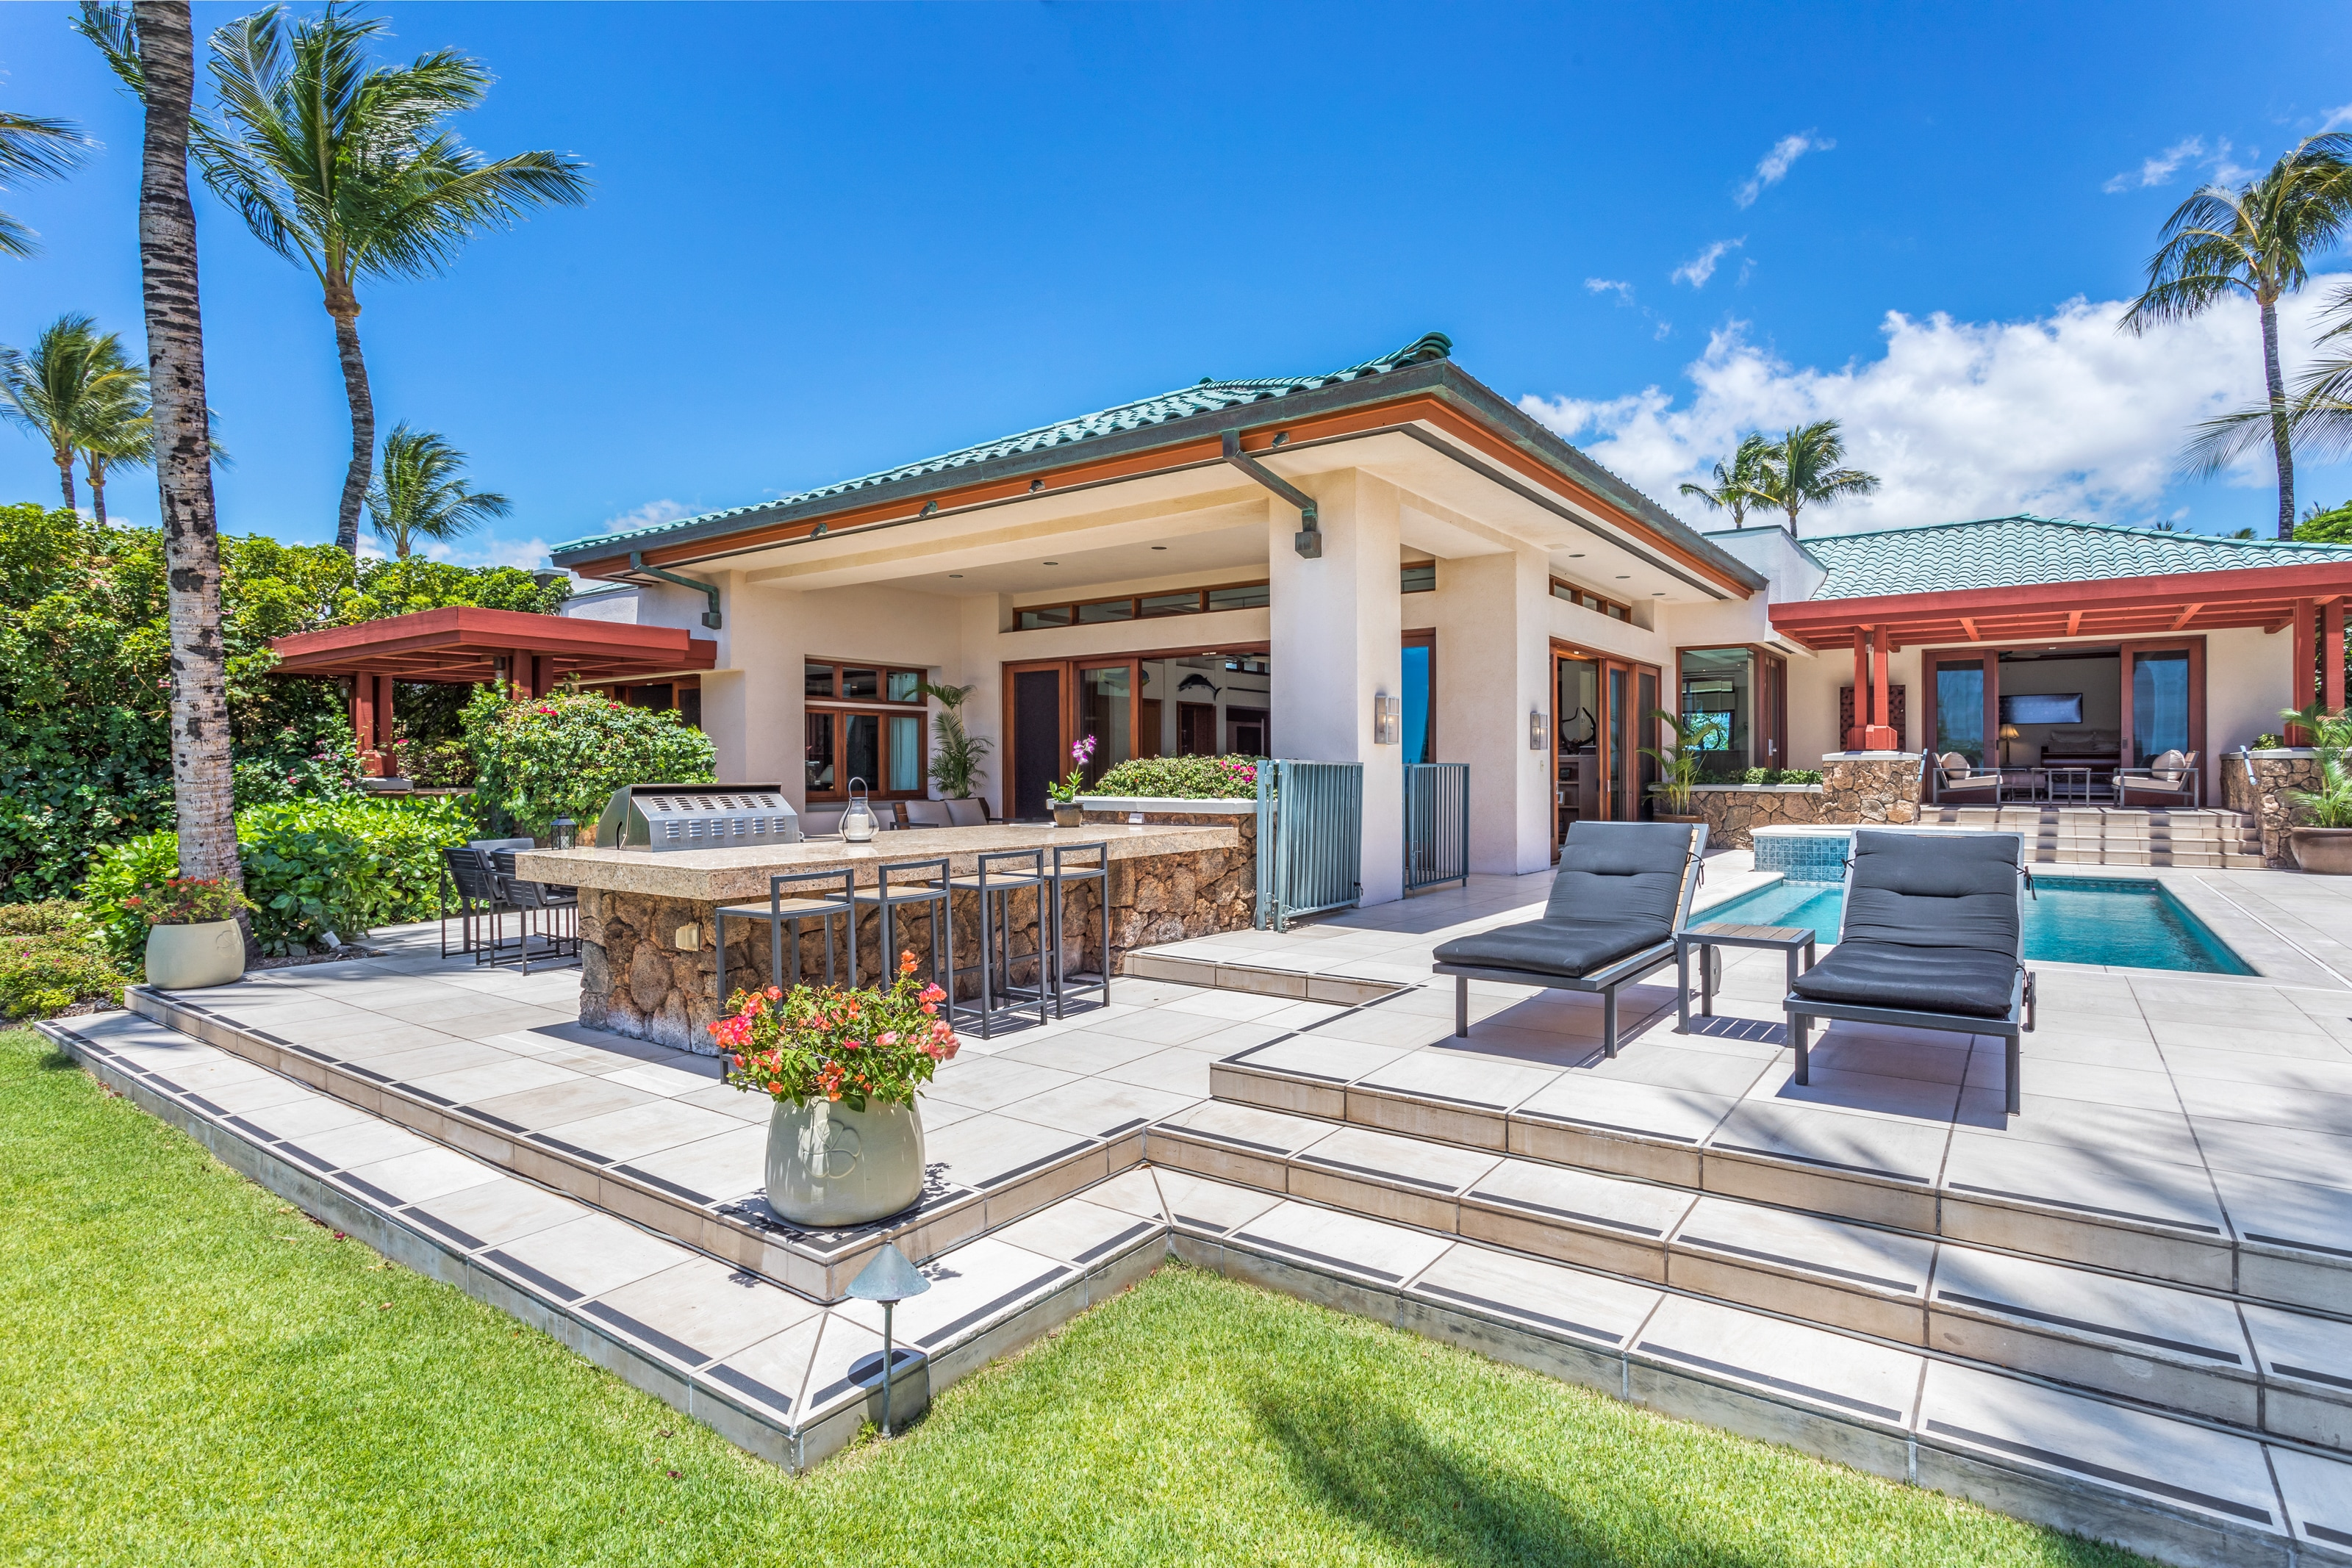 Exquisite Oceanfront Estate with Chef's and Outdoor Kitchen, Plus Pool